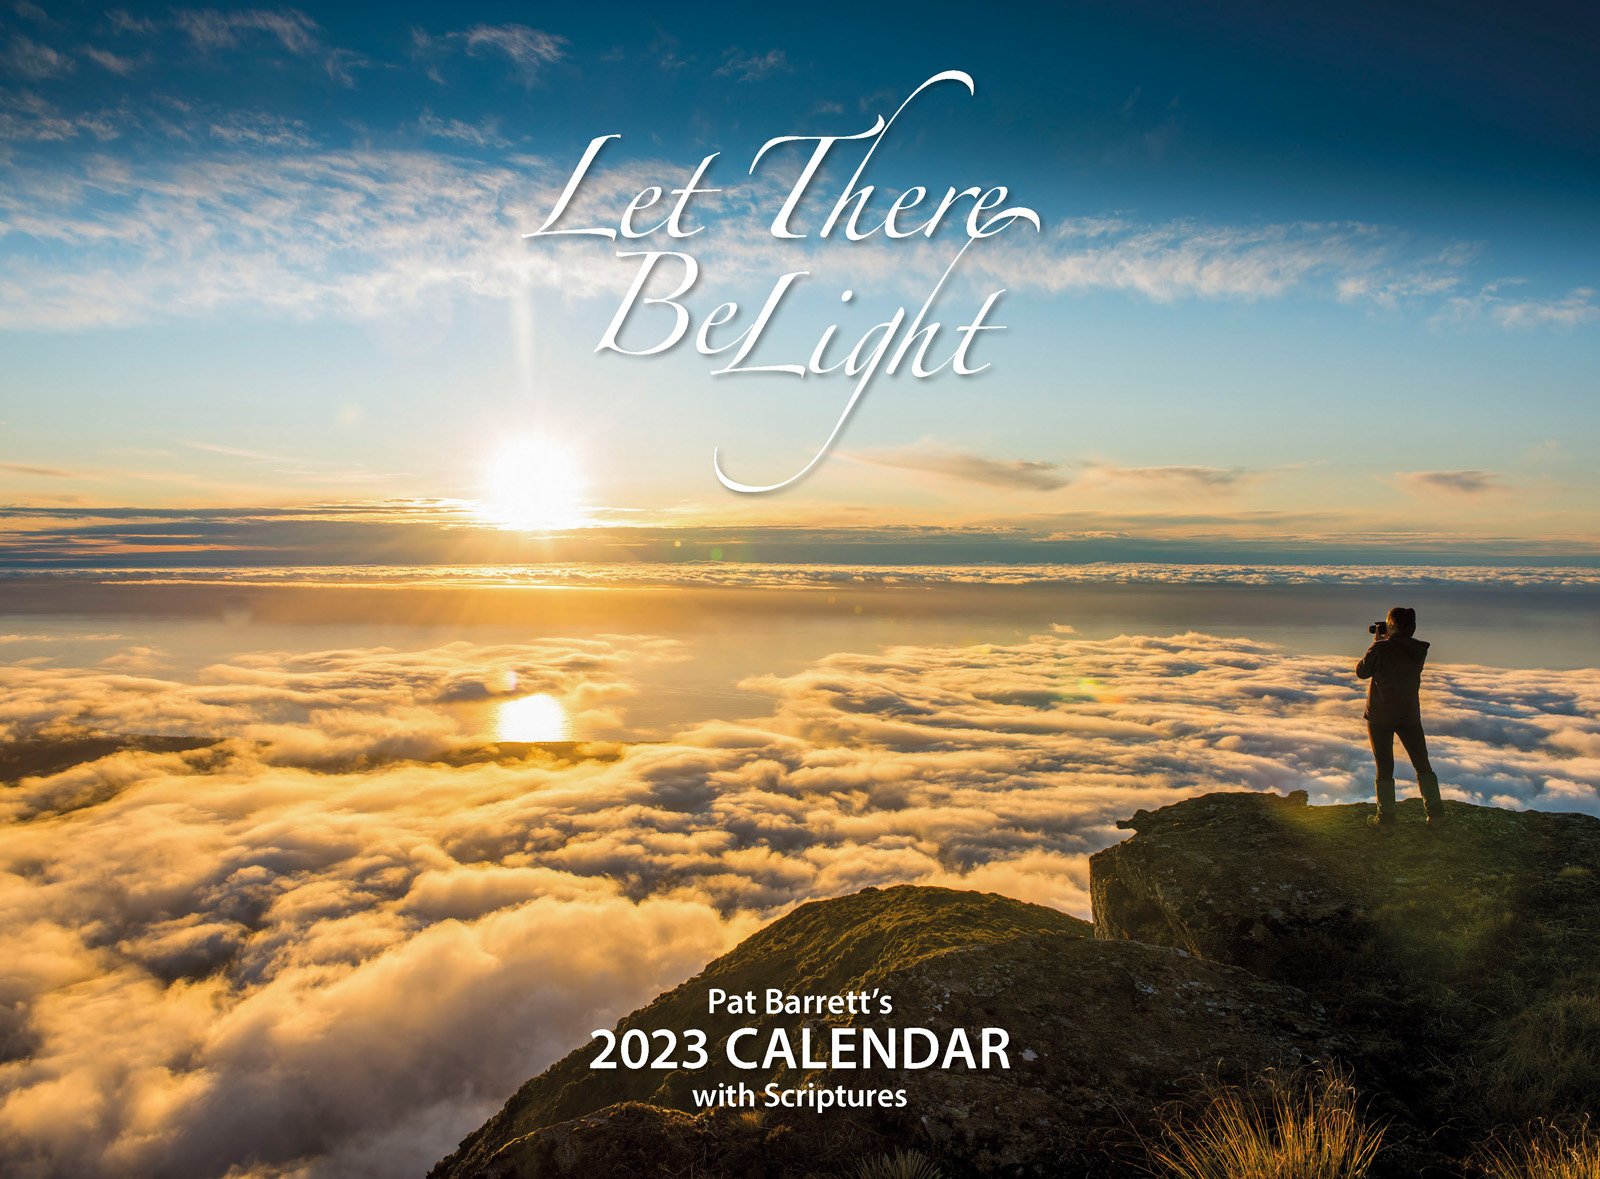 Let There Be Light 2022